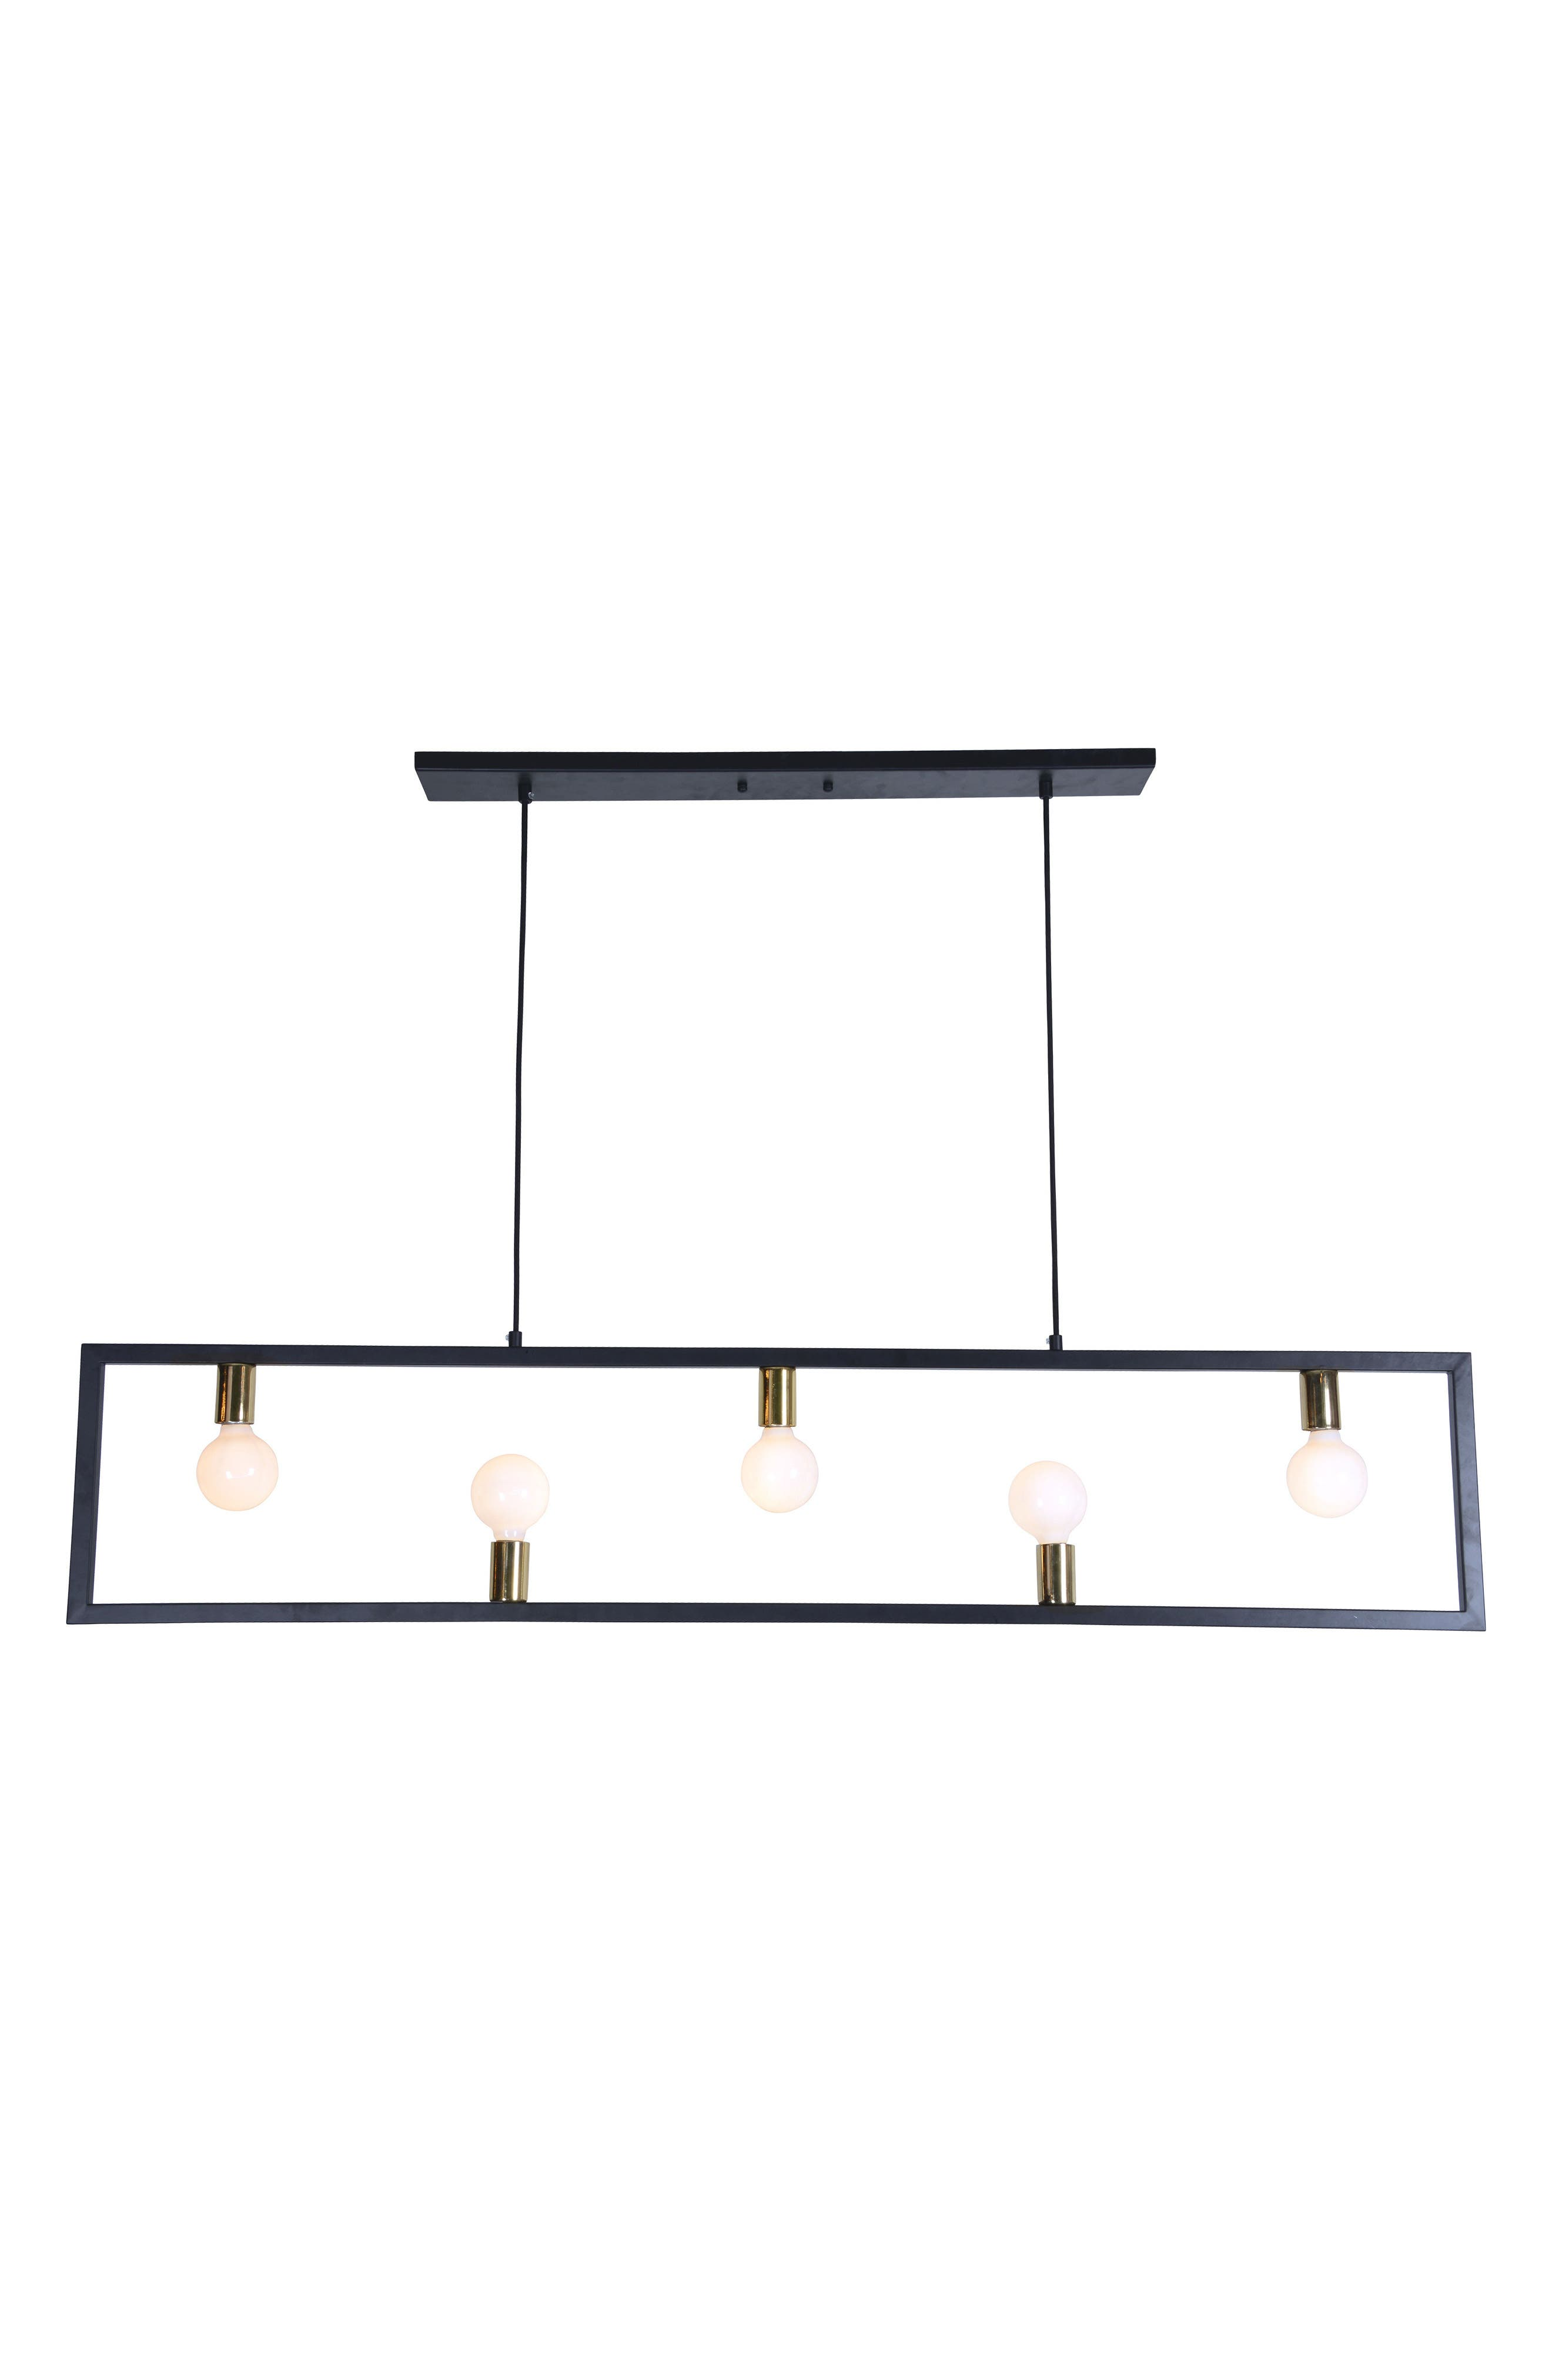 Main Image - Renwil Vera Ceiling Light Fixture